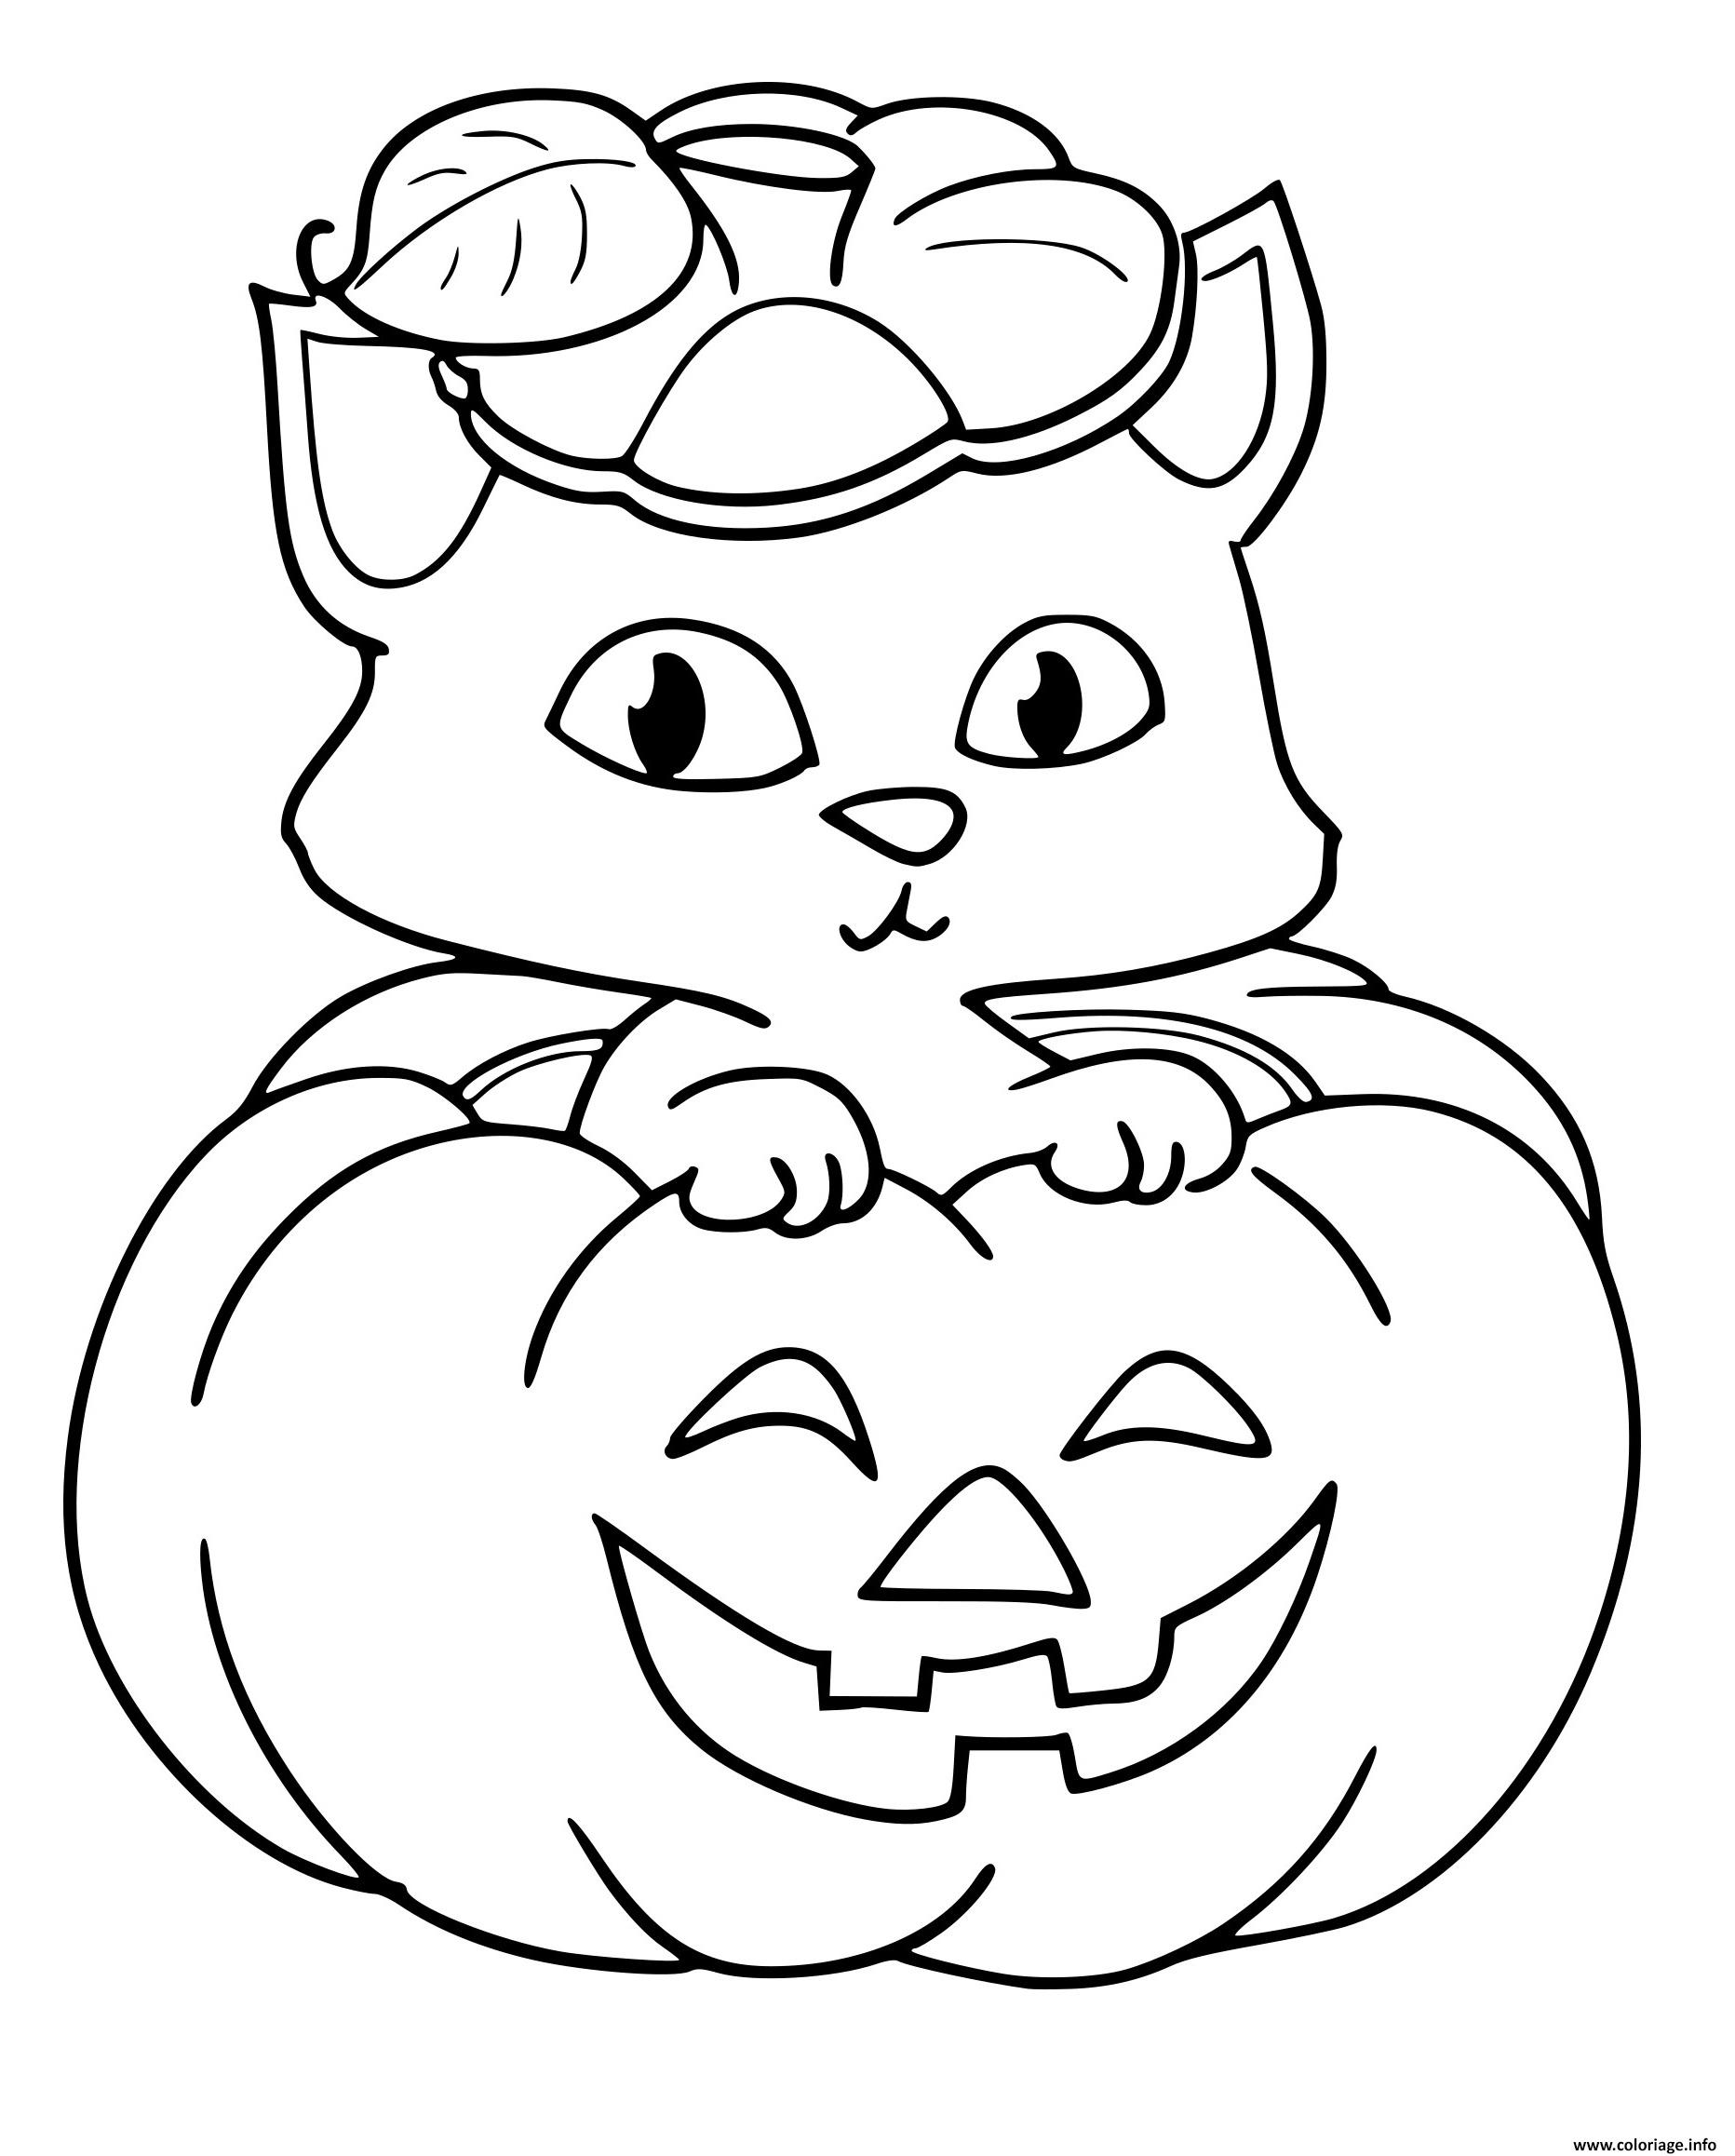 coloriage citrouille chat halloween dessin. Black Bedroom Furniture Sets. Home Design Ideas